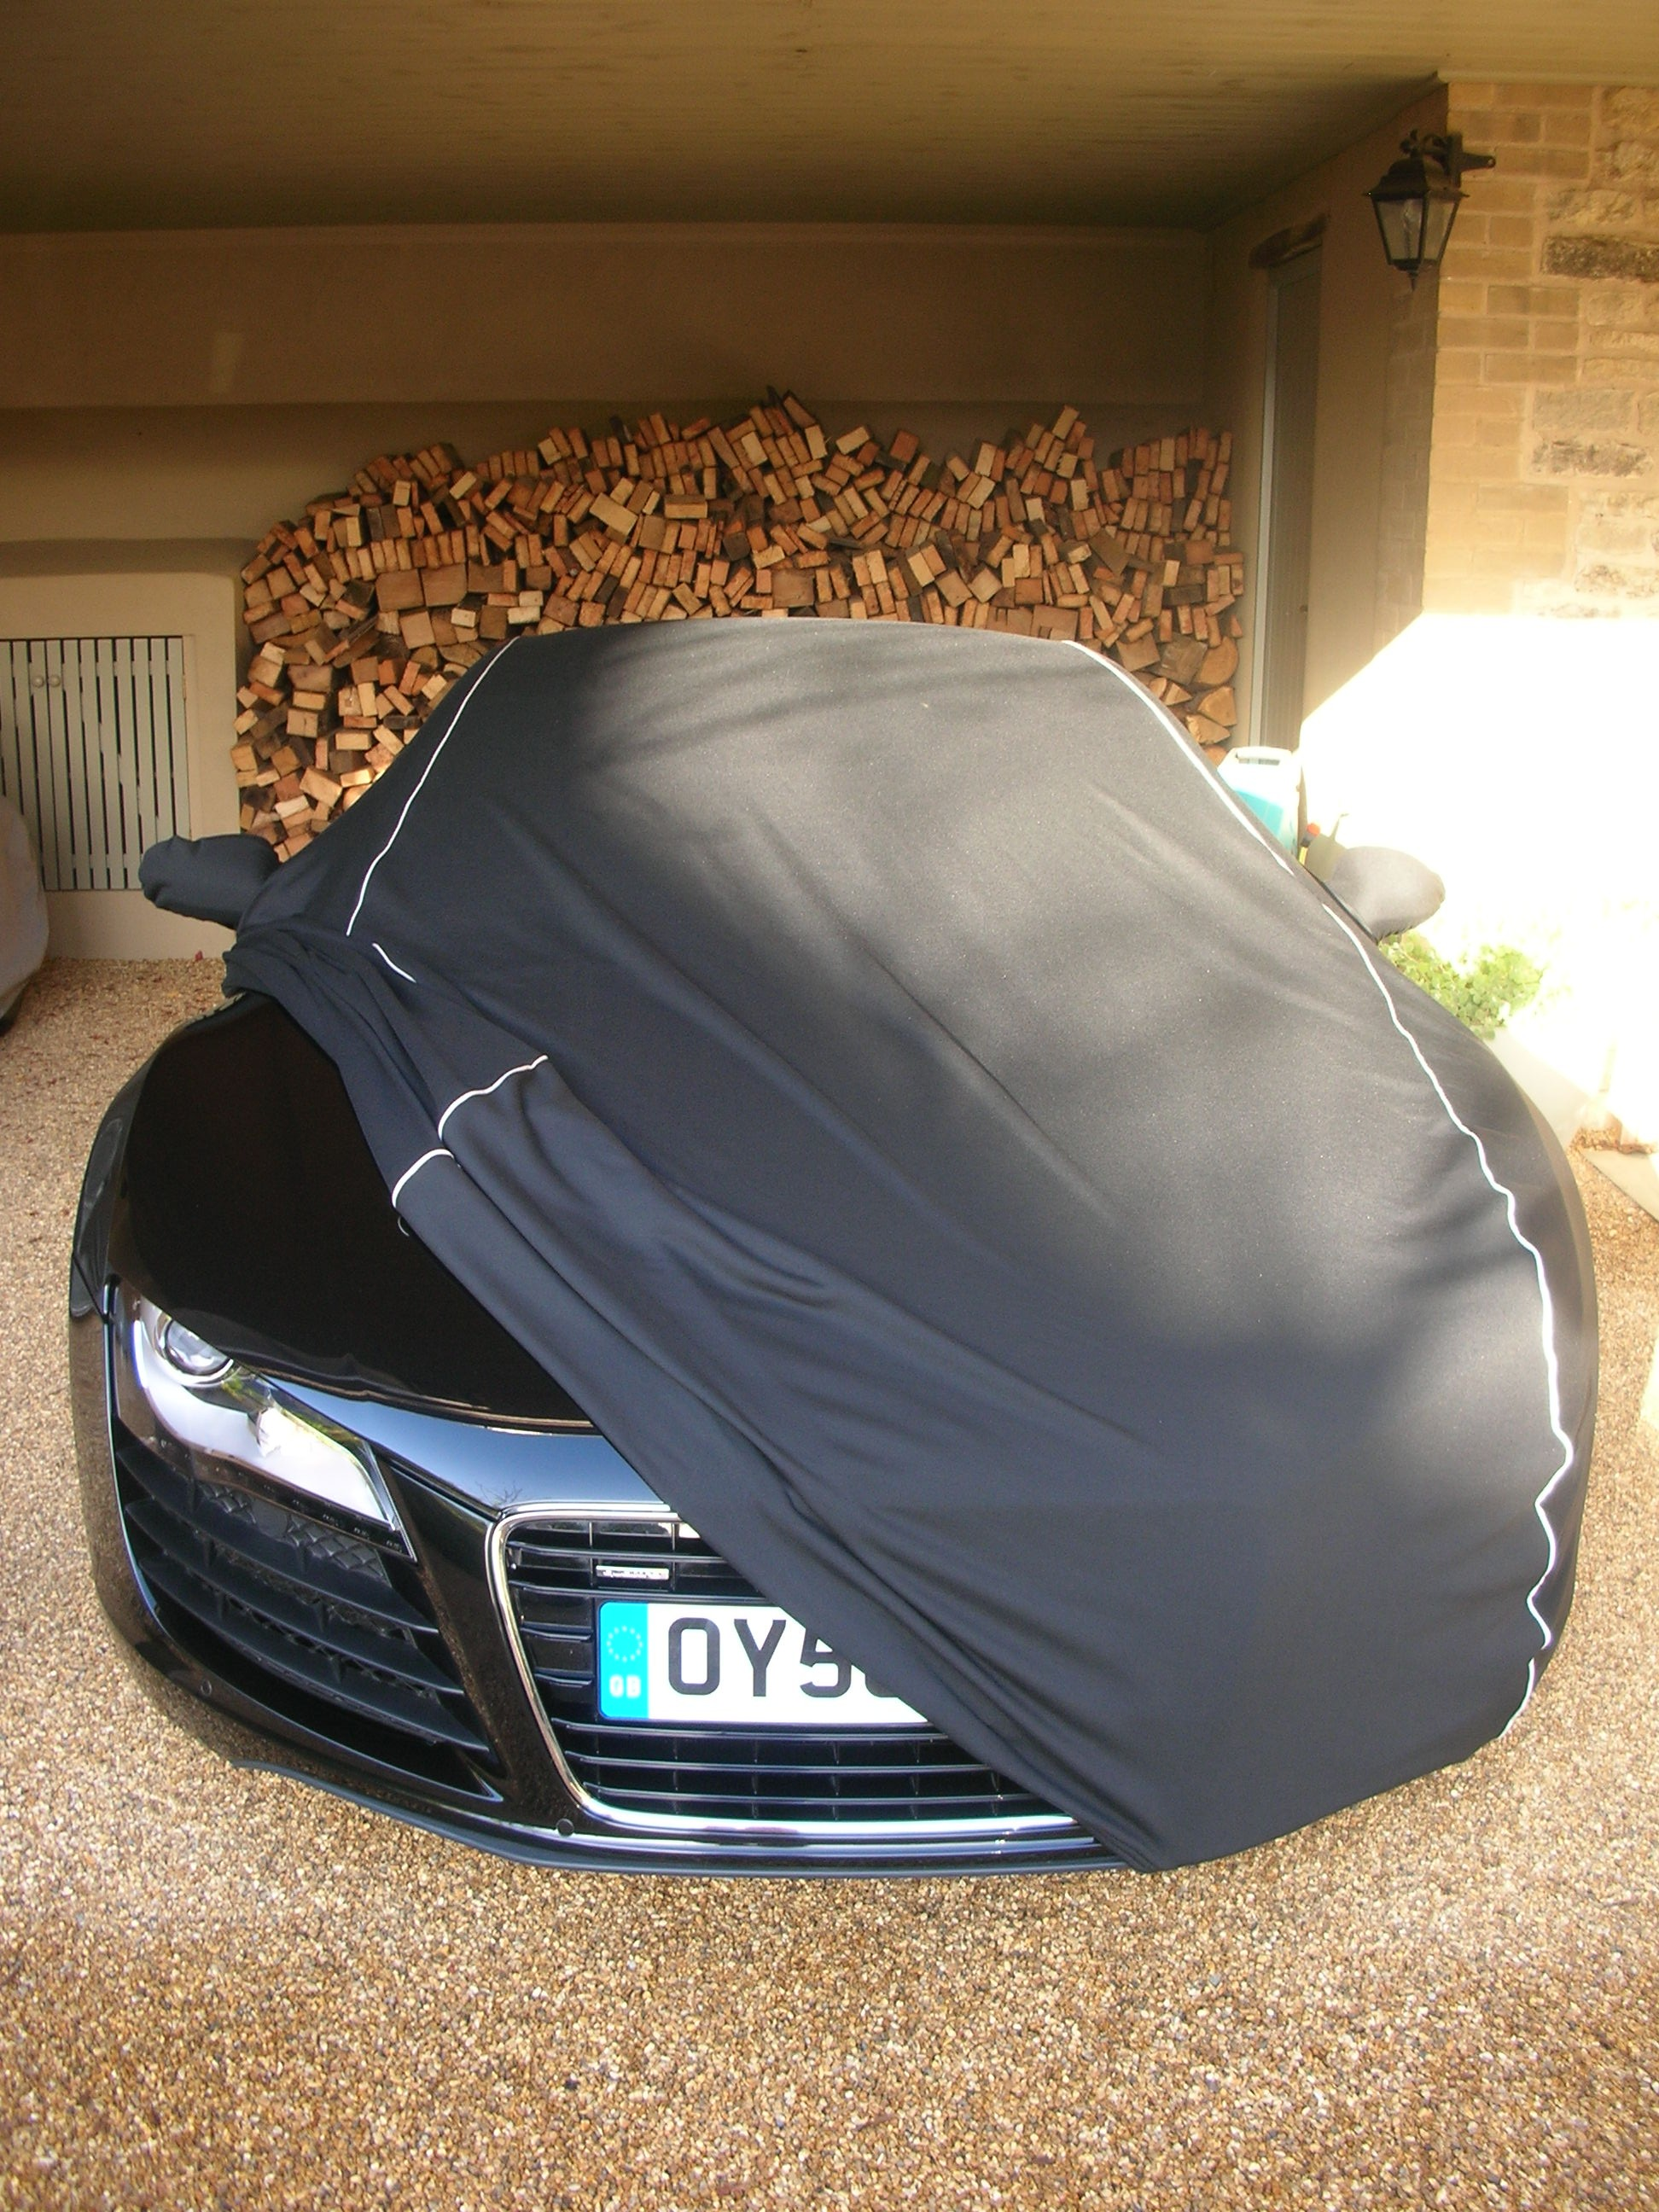 Audi Kalahari Stretch Indoor Car Cover Starting From All Products - Audi tt roadster car cover